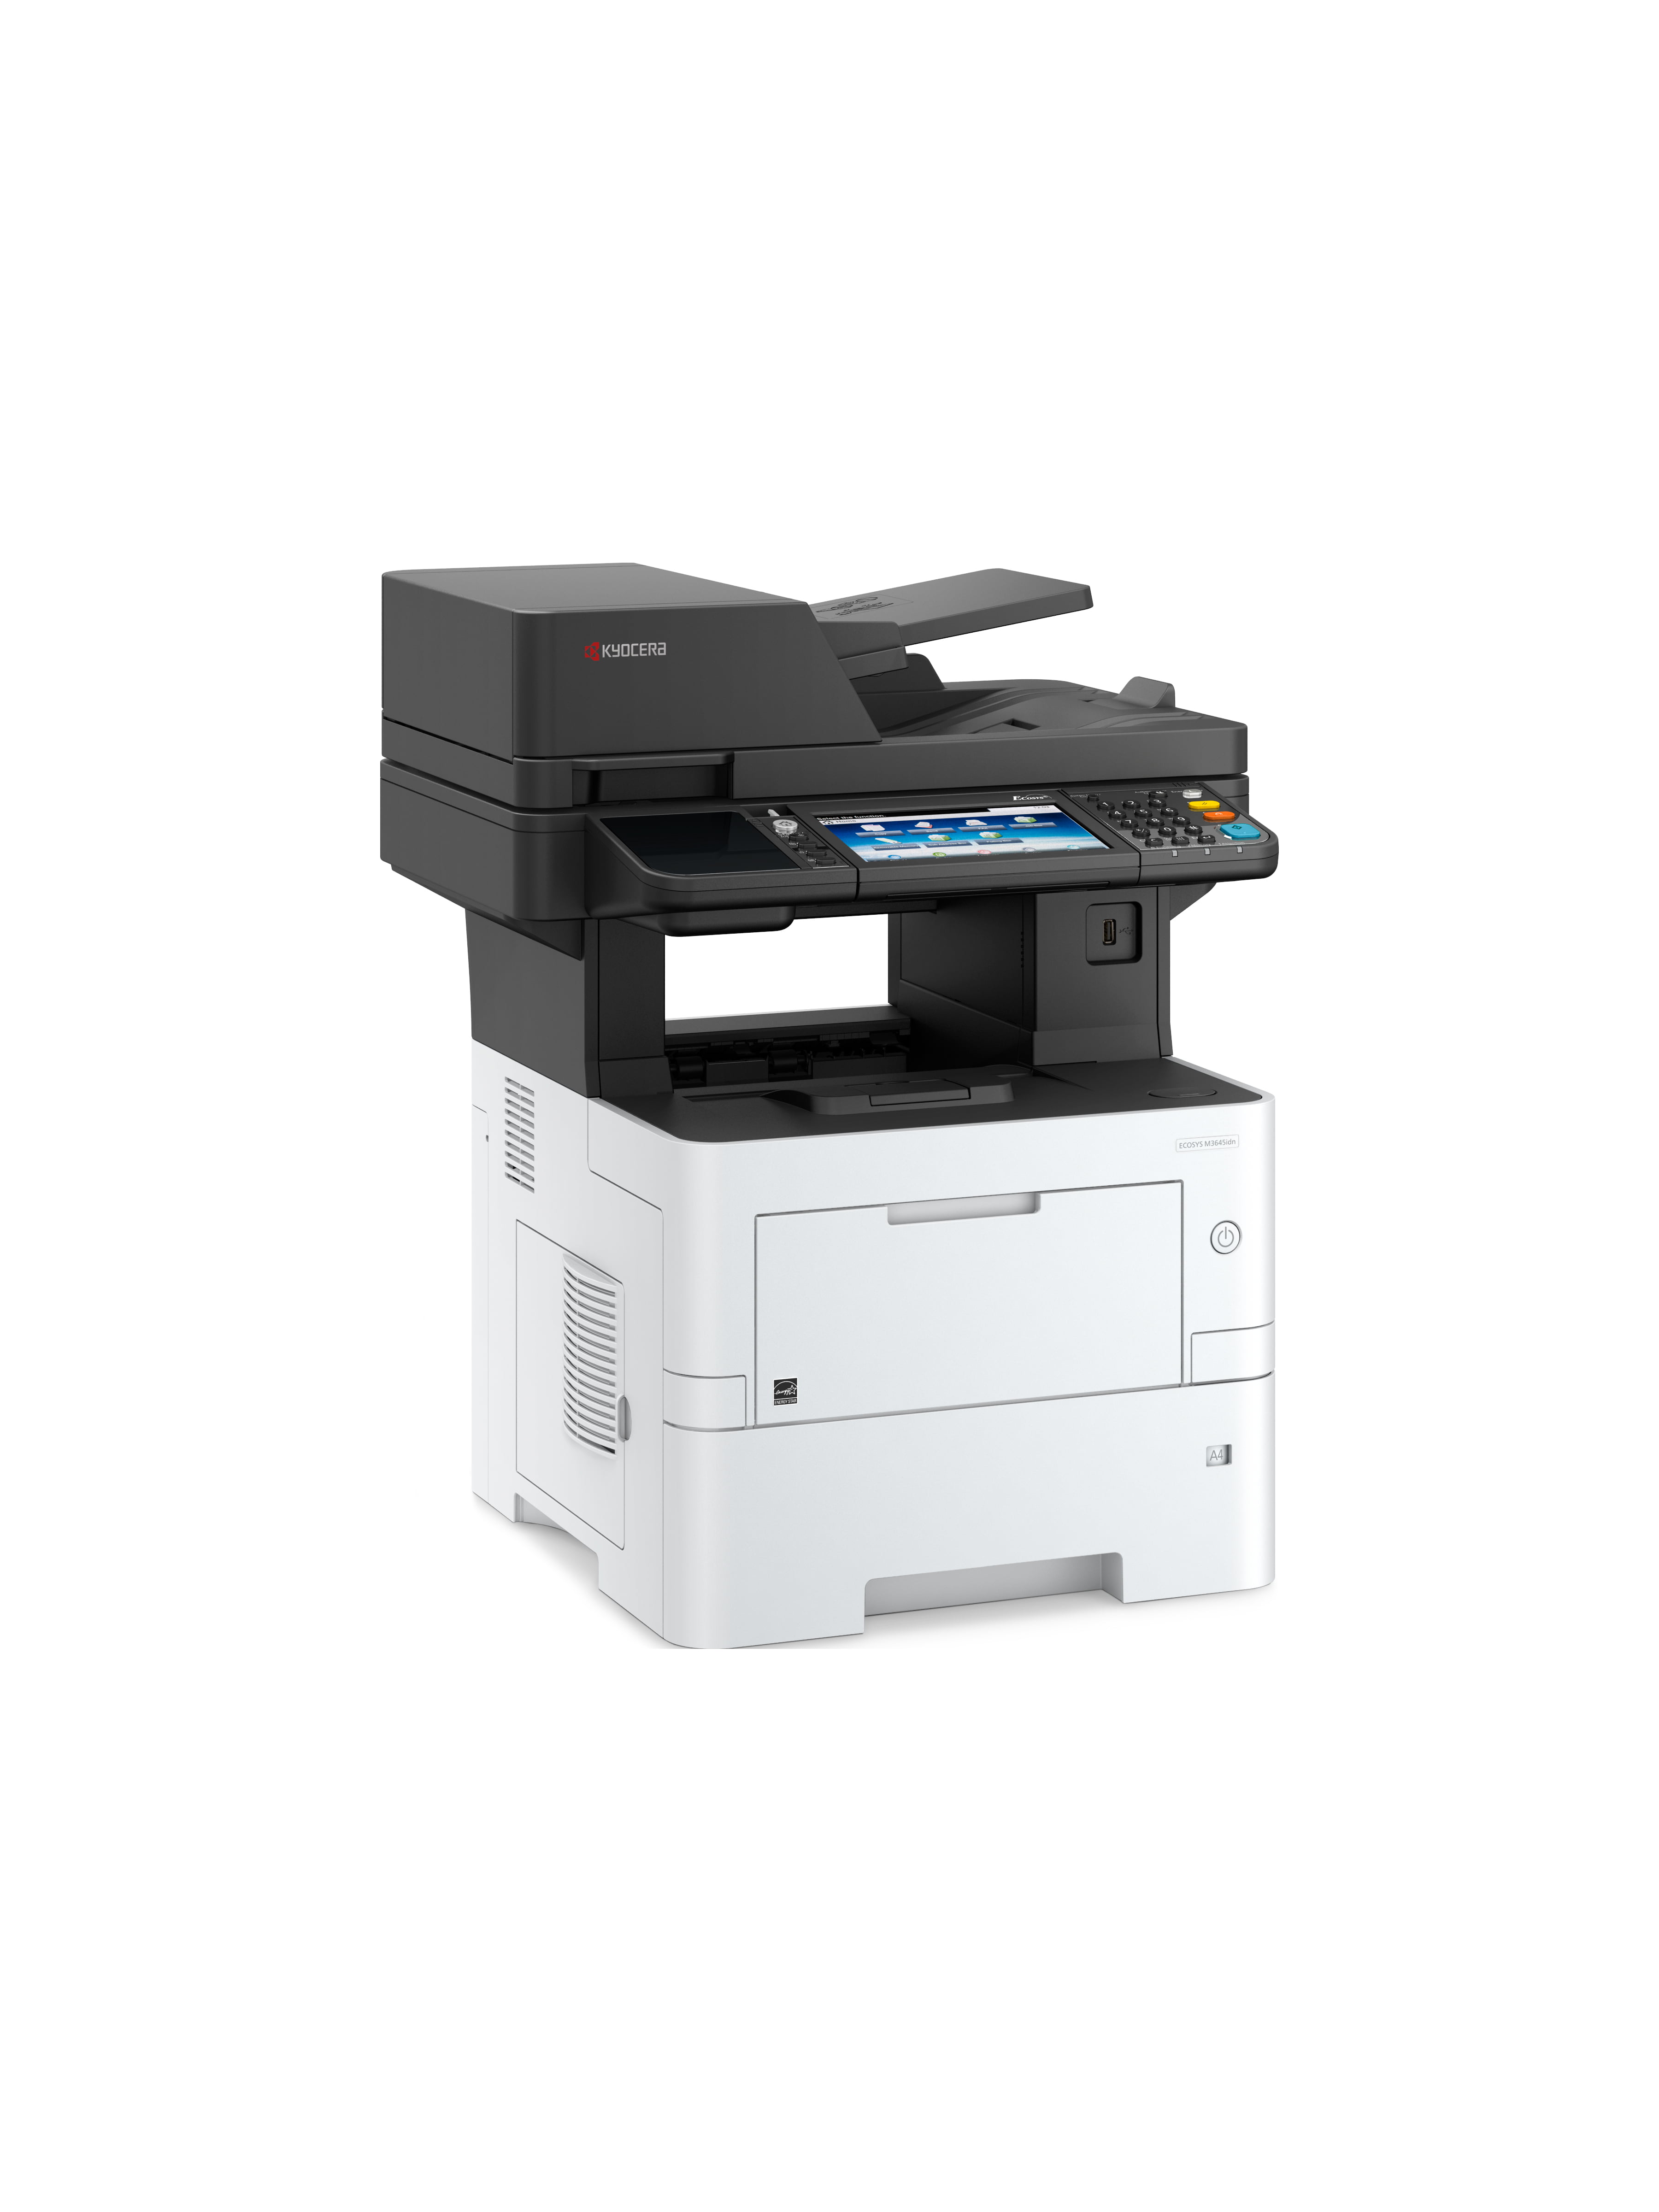 ECOSYS M3645idn - by Kyocera  The Copier and Laser Printer